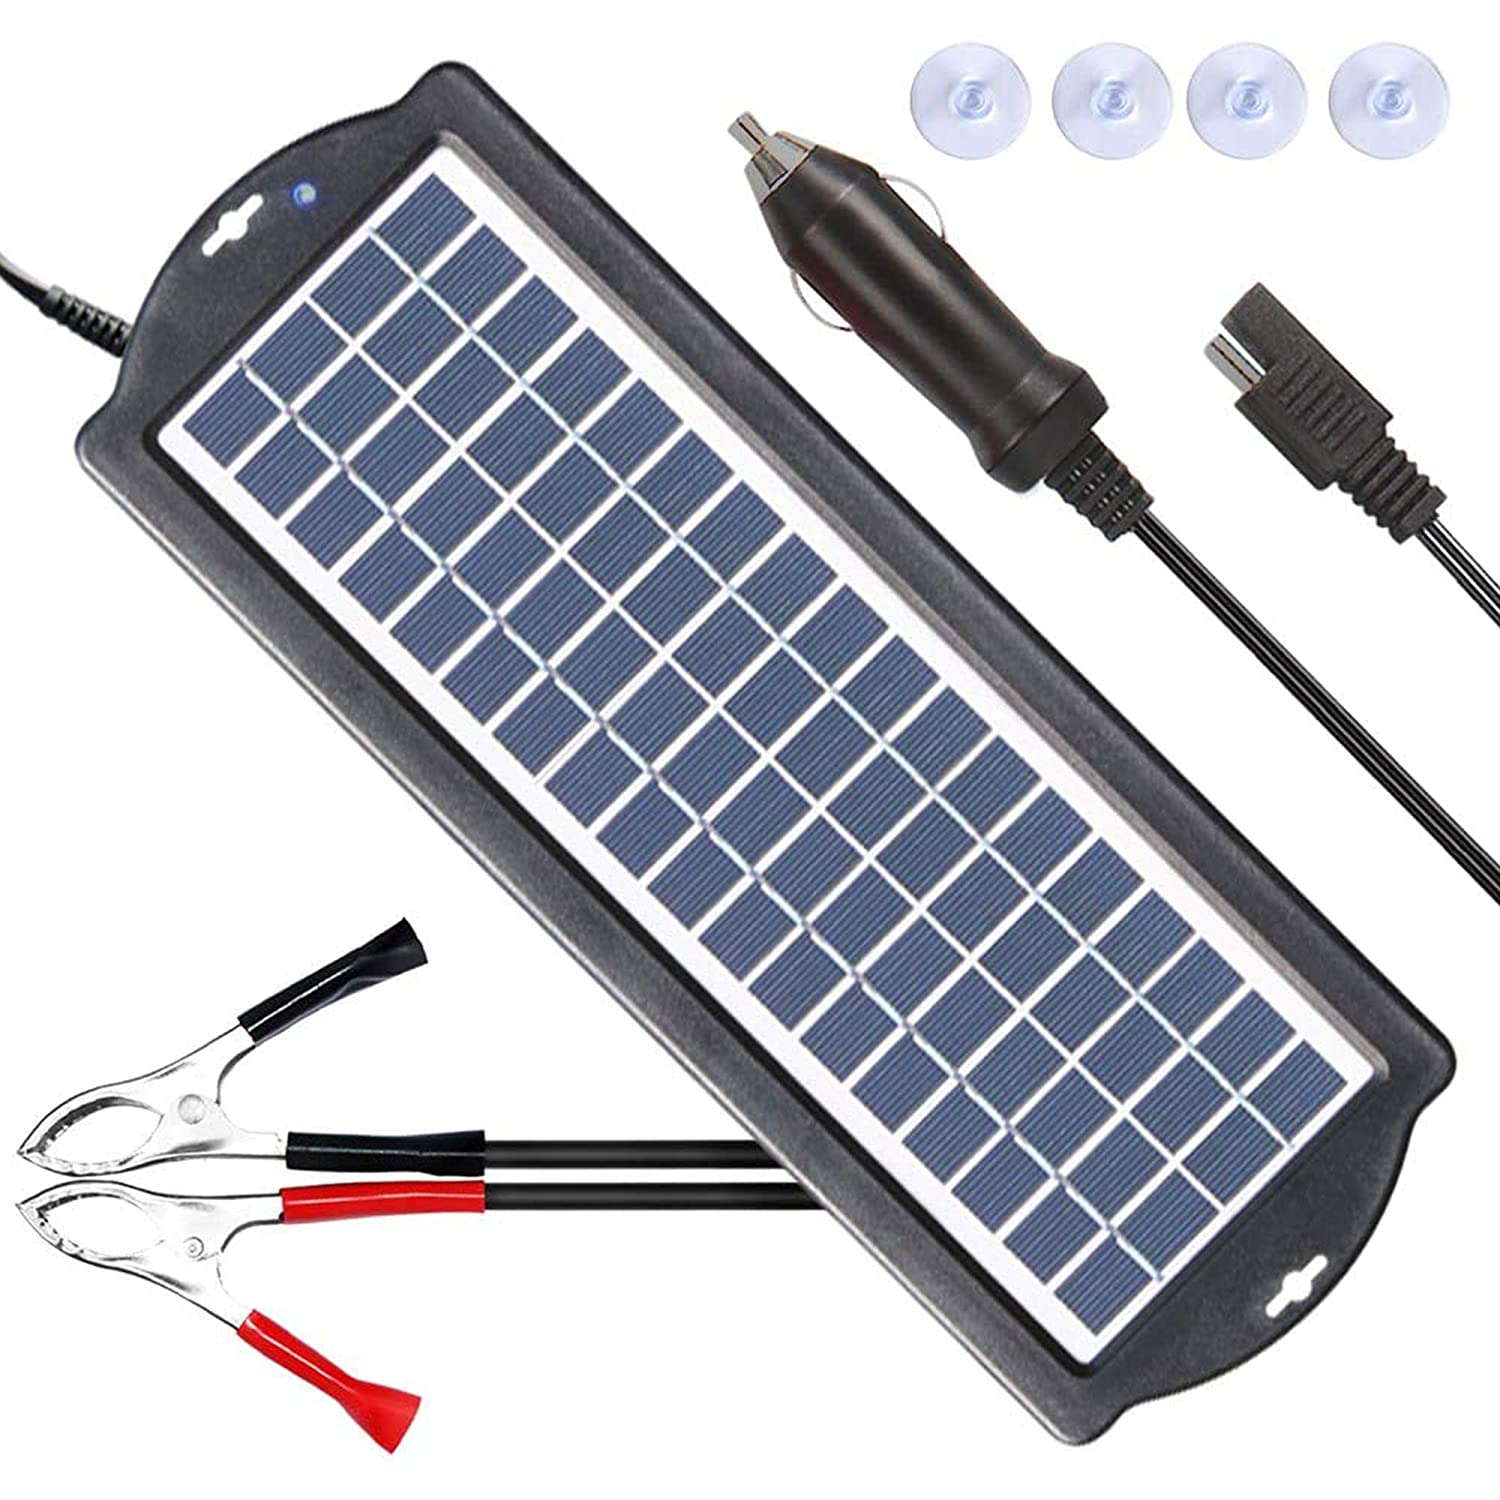 Solar Powered Battery Charger and Maintainer - POWISER